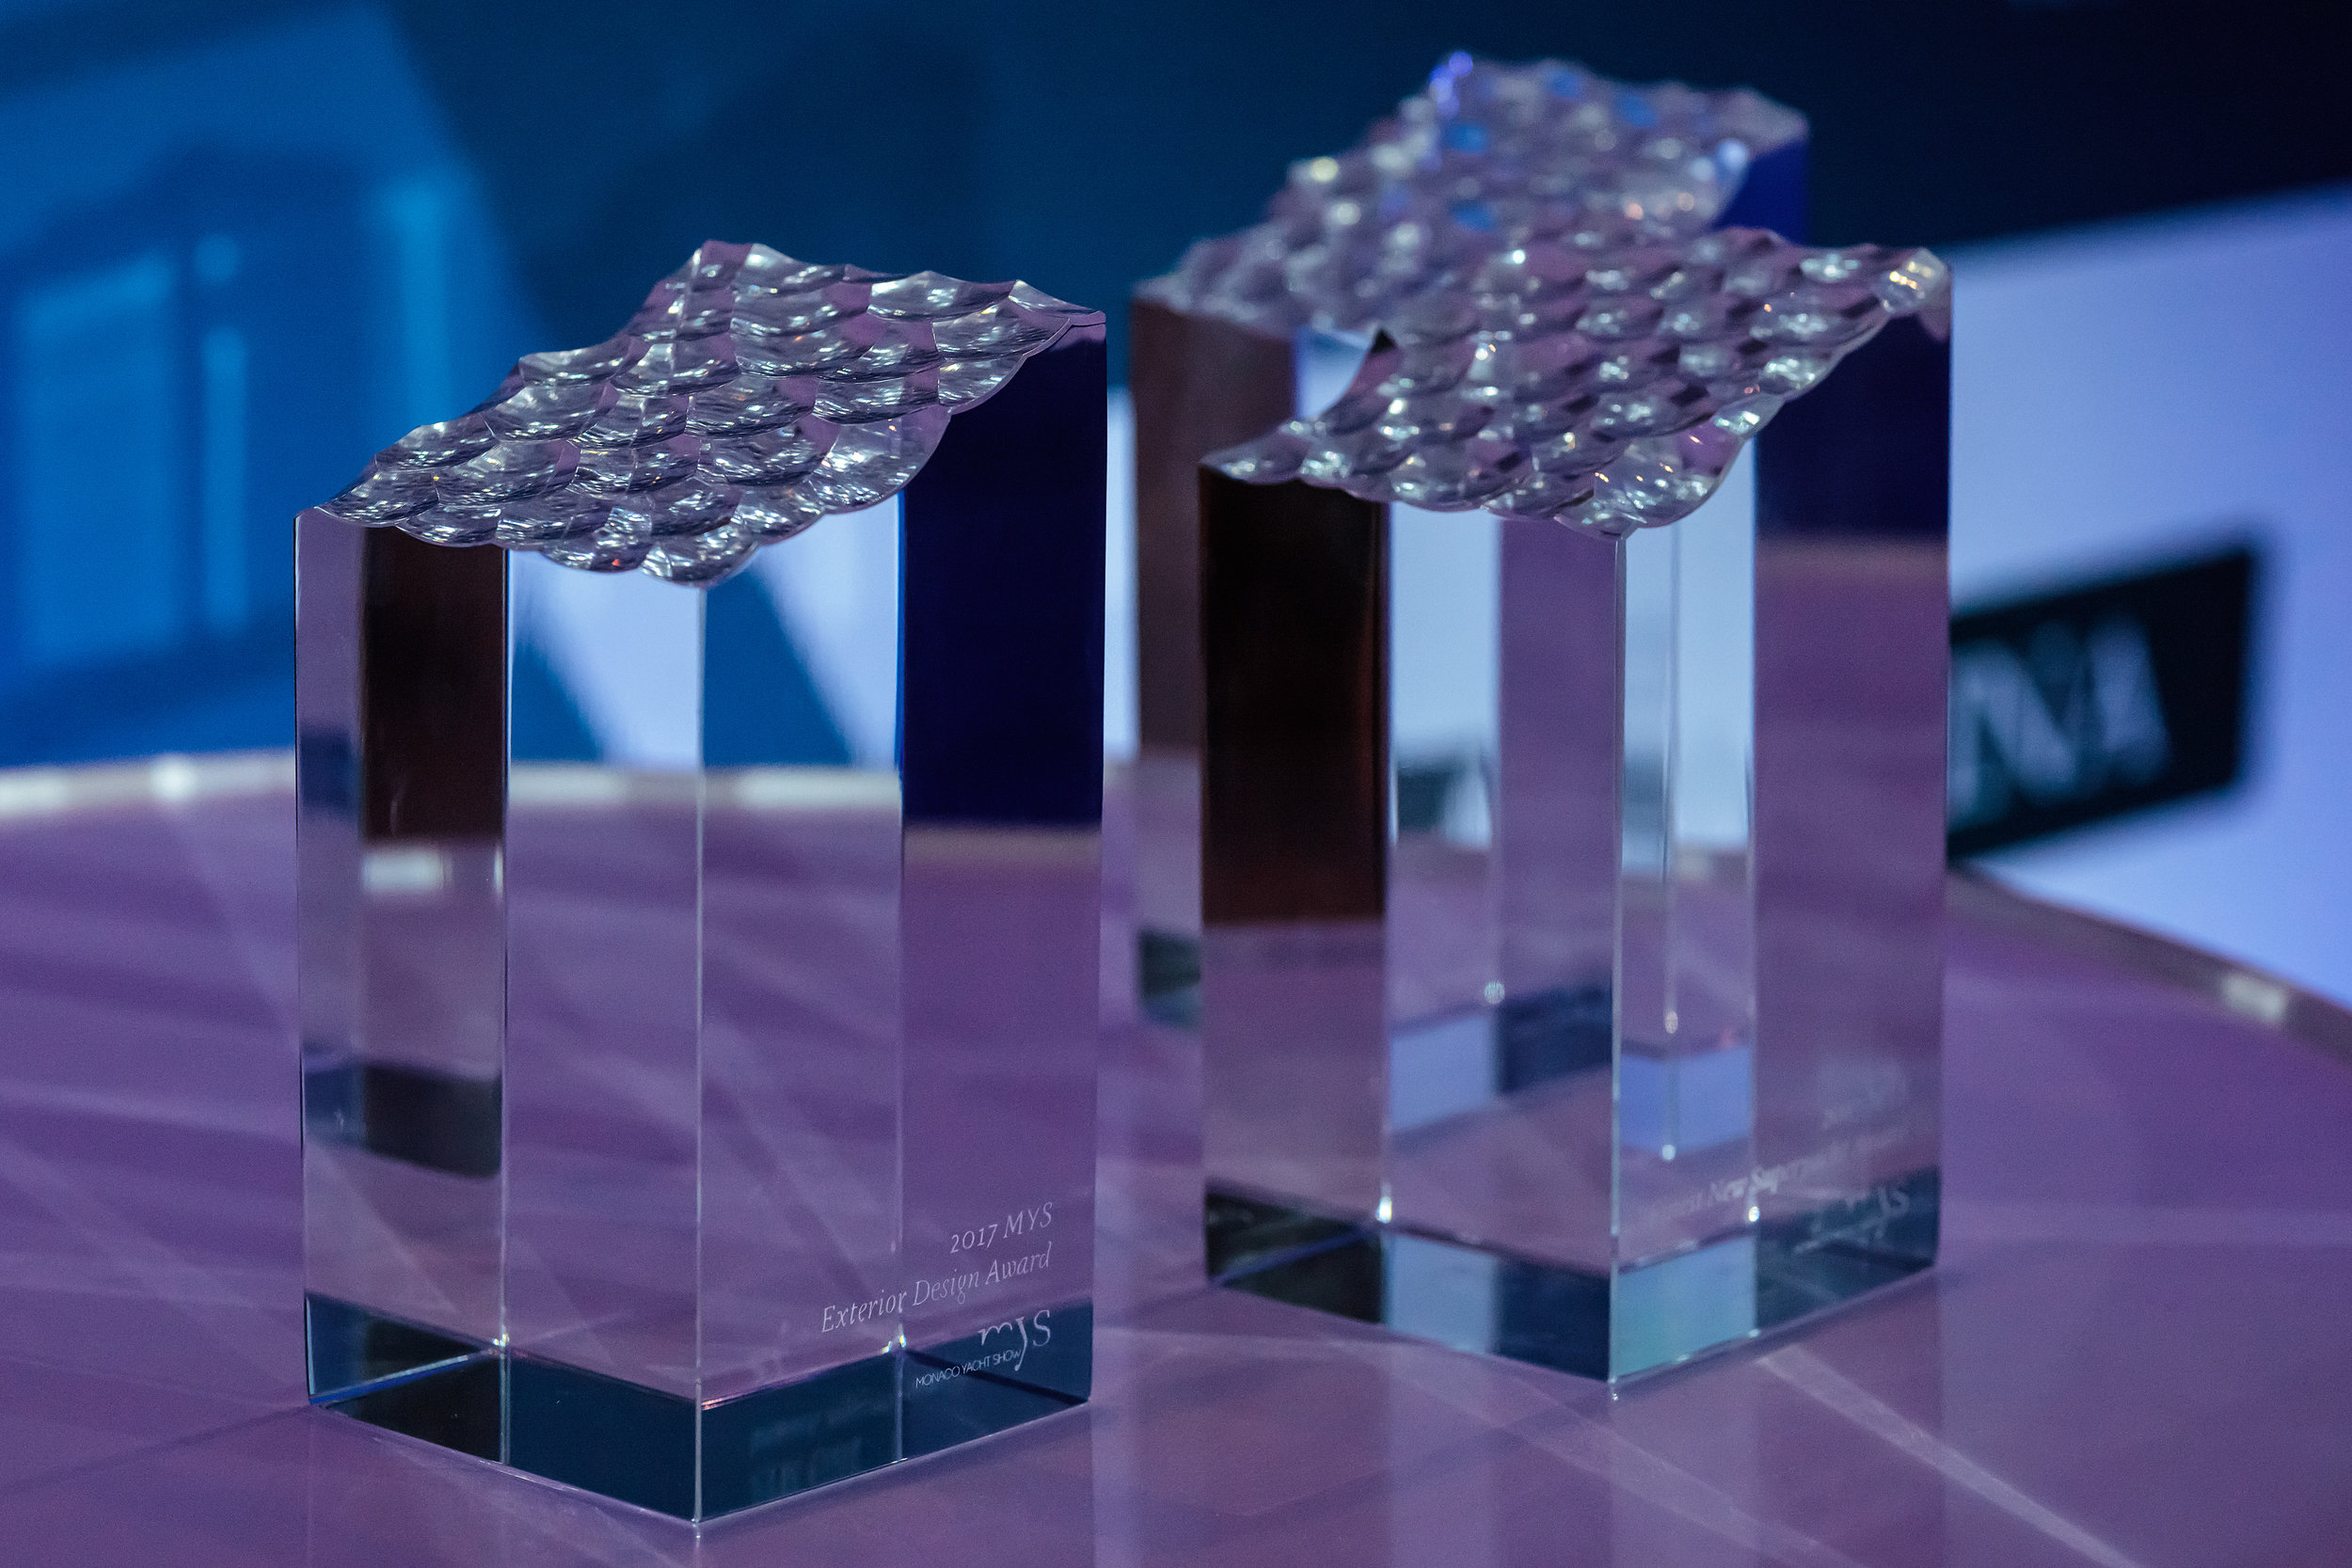 Monaco Yacht Show 2017 Award Trophies designed and crafted by Ⓒ  Preciosa